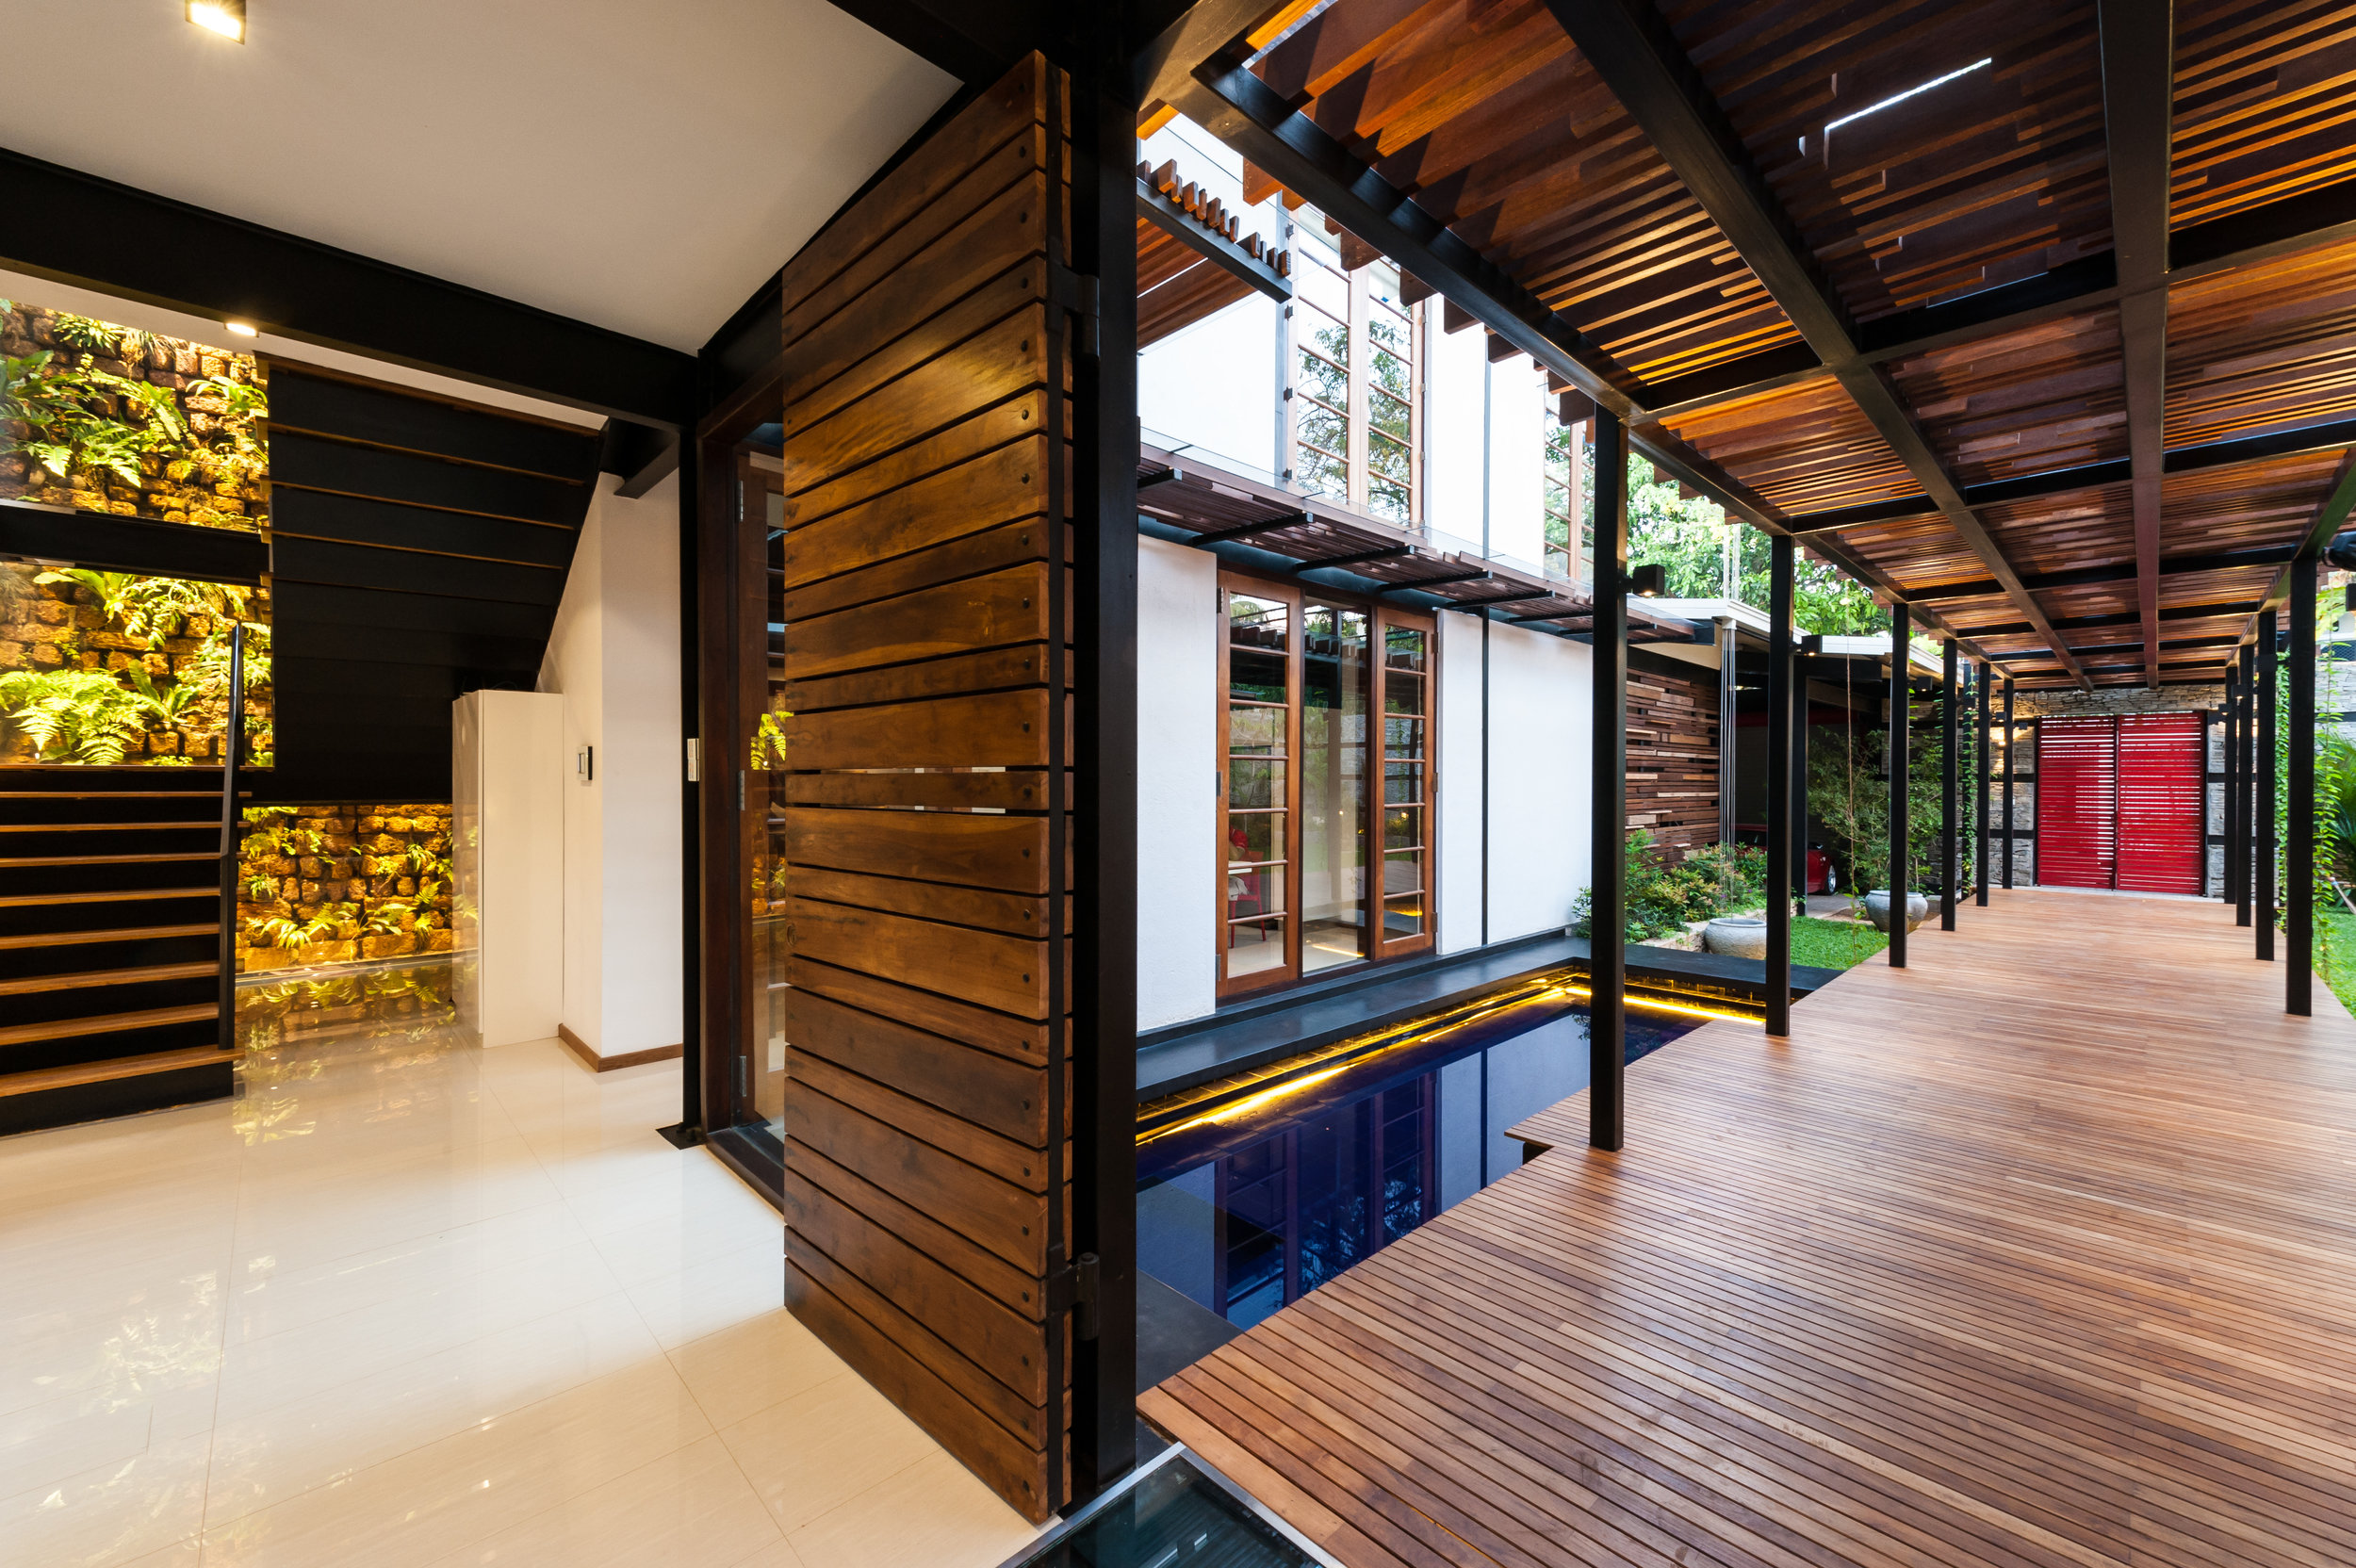 House No. 8 - raised timber walkway into building